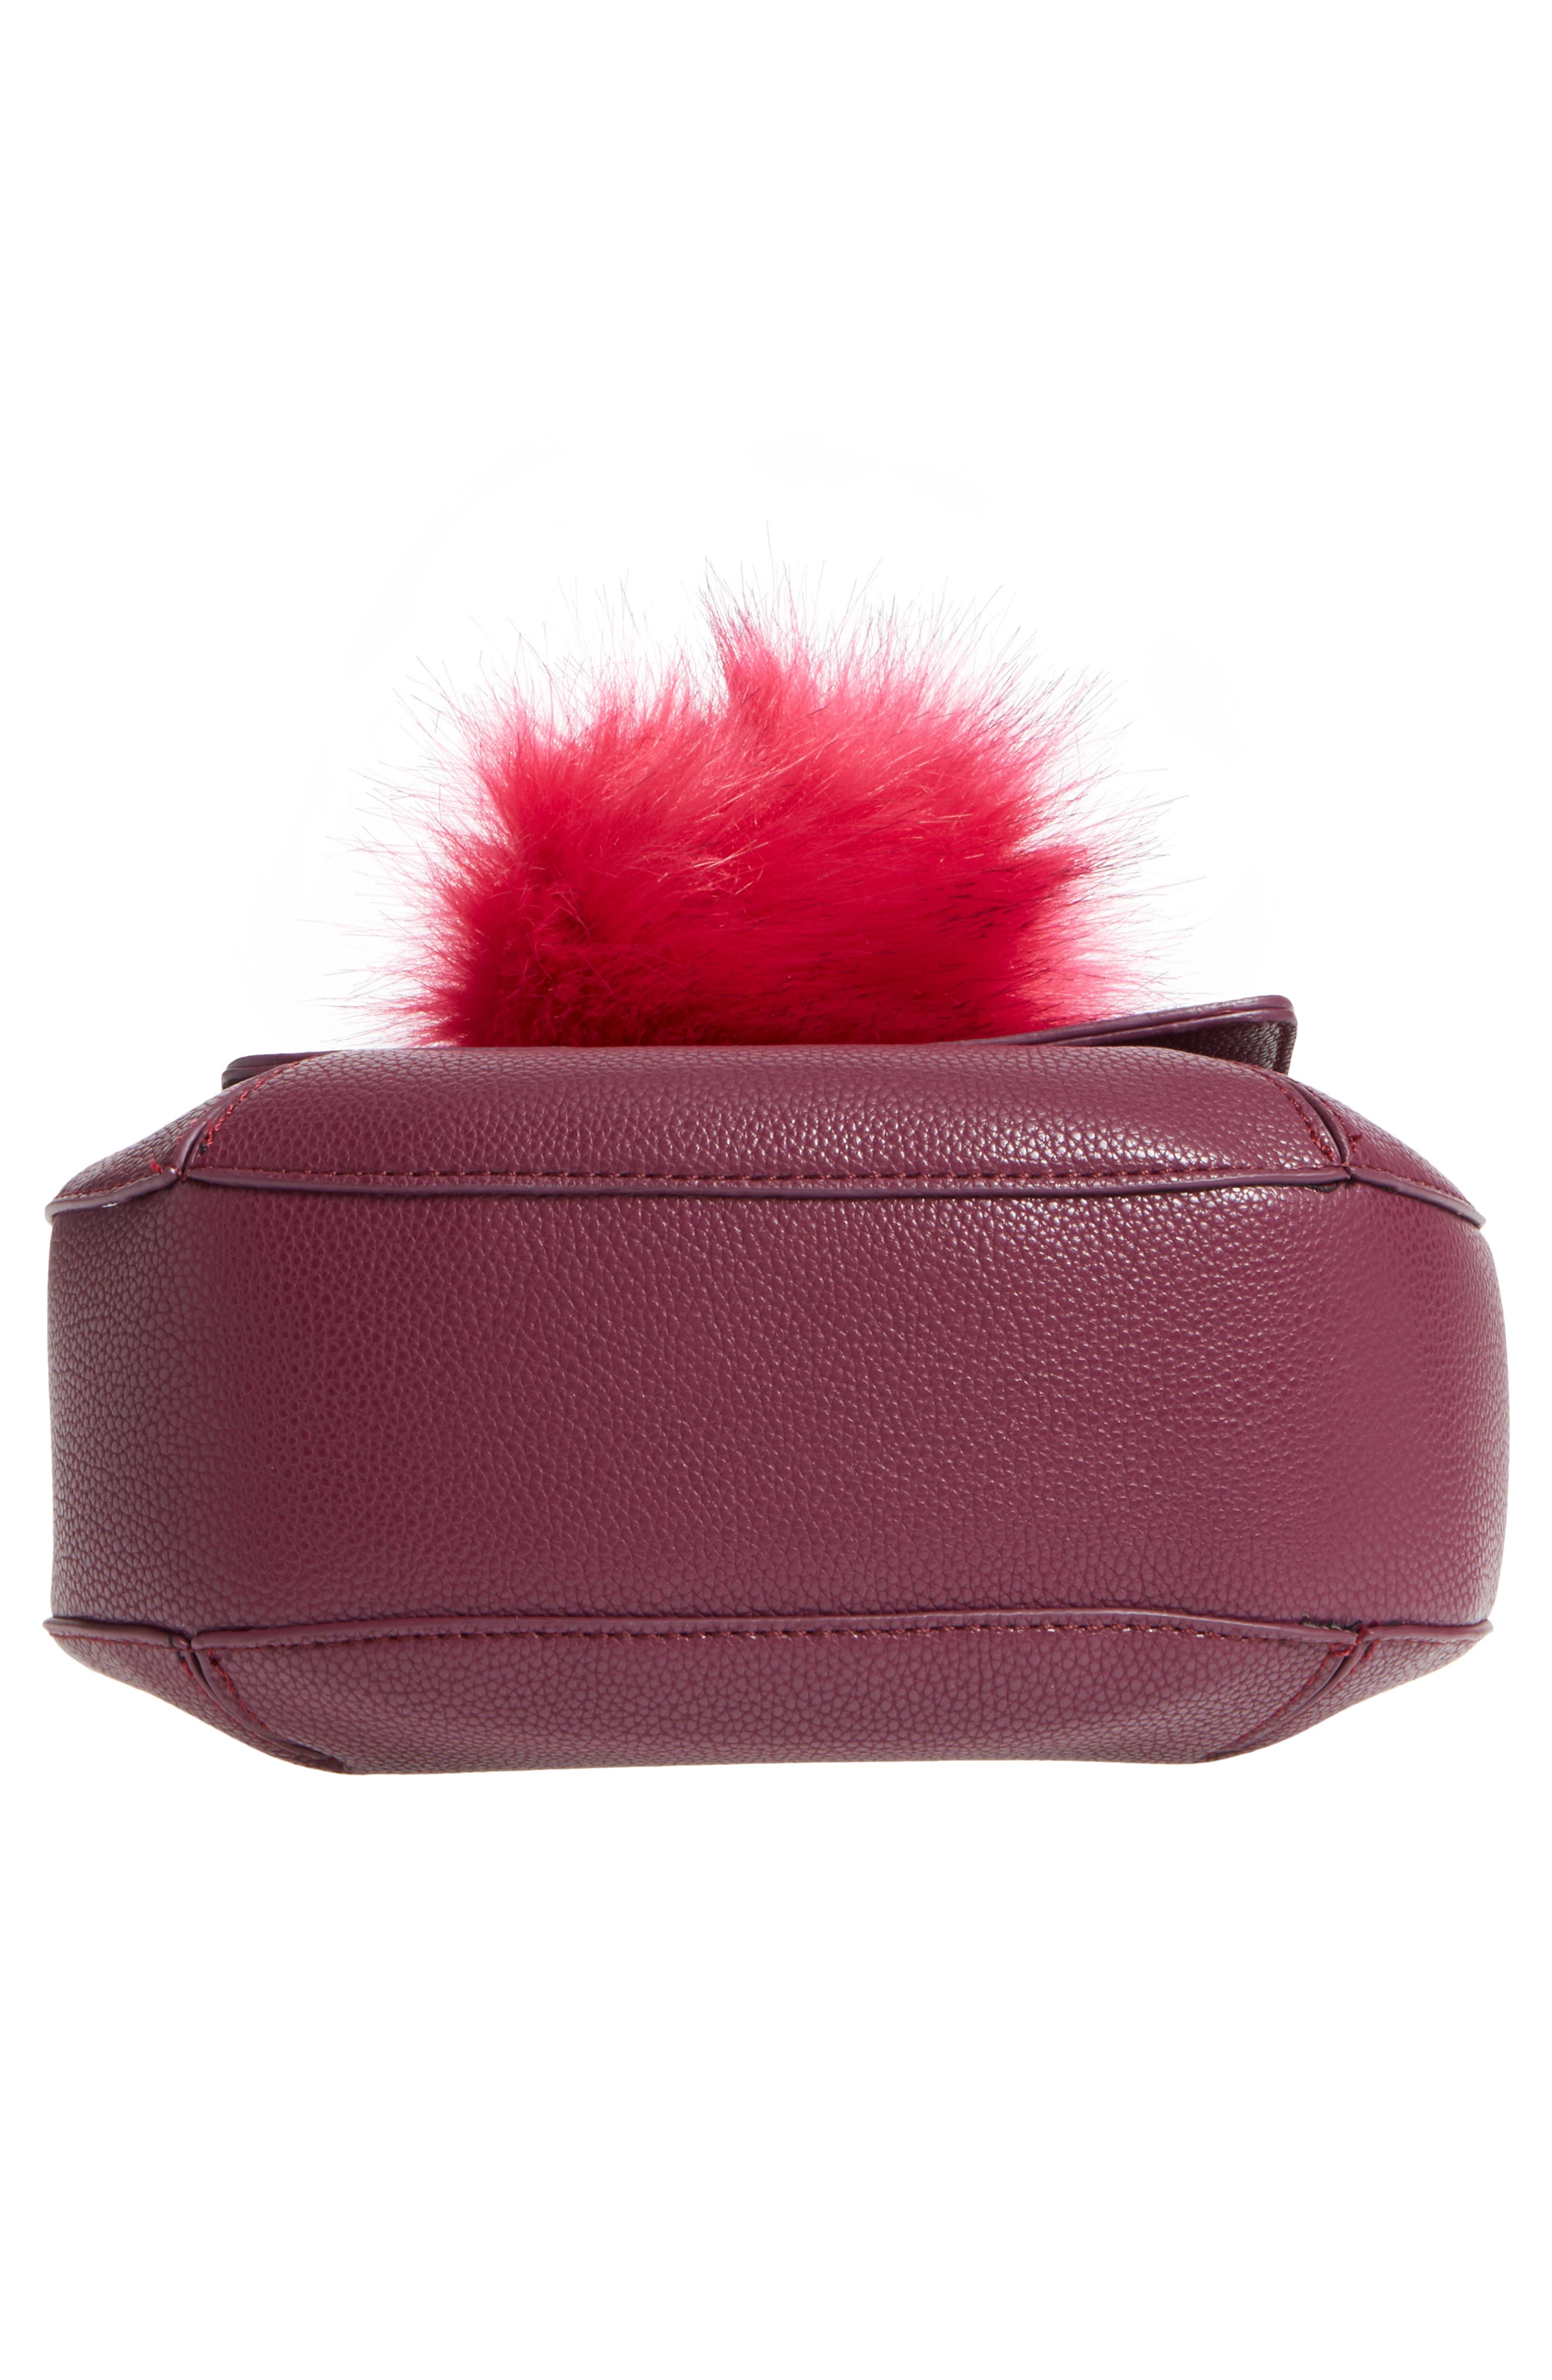 Isa Faux Leather Crossbody Bag,                             Alternate thumbnail 6, color,                             Berry Sweet/ Boysenberry